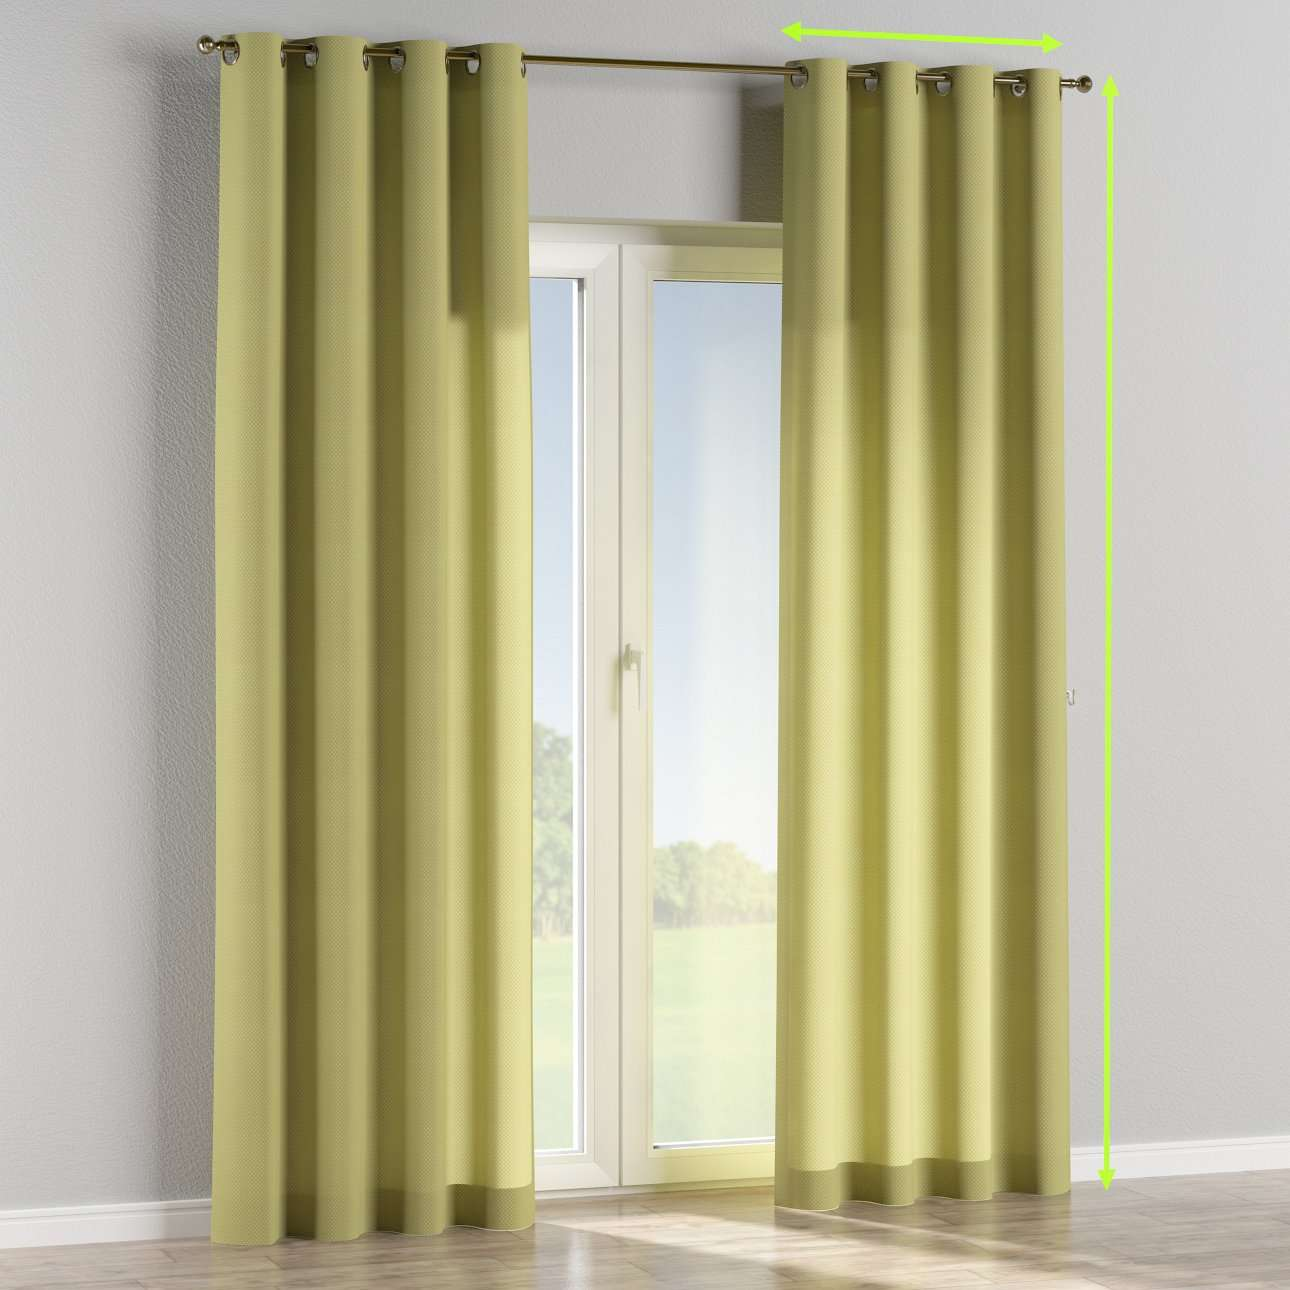 Eyelet curtains in collection Ashley, fabric: 137-51